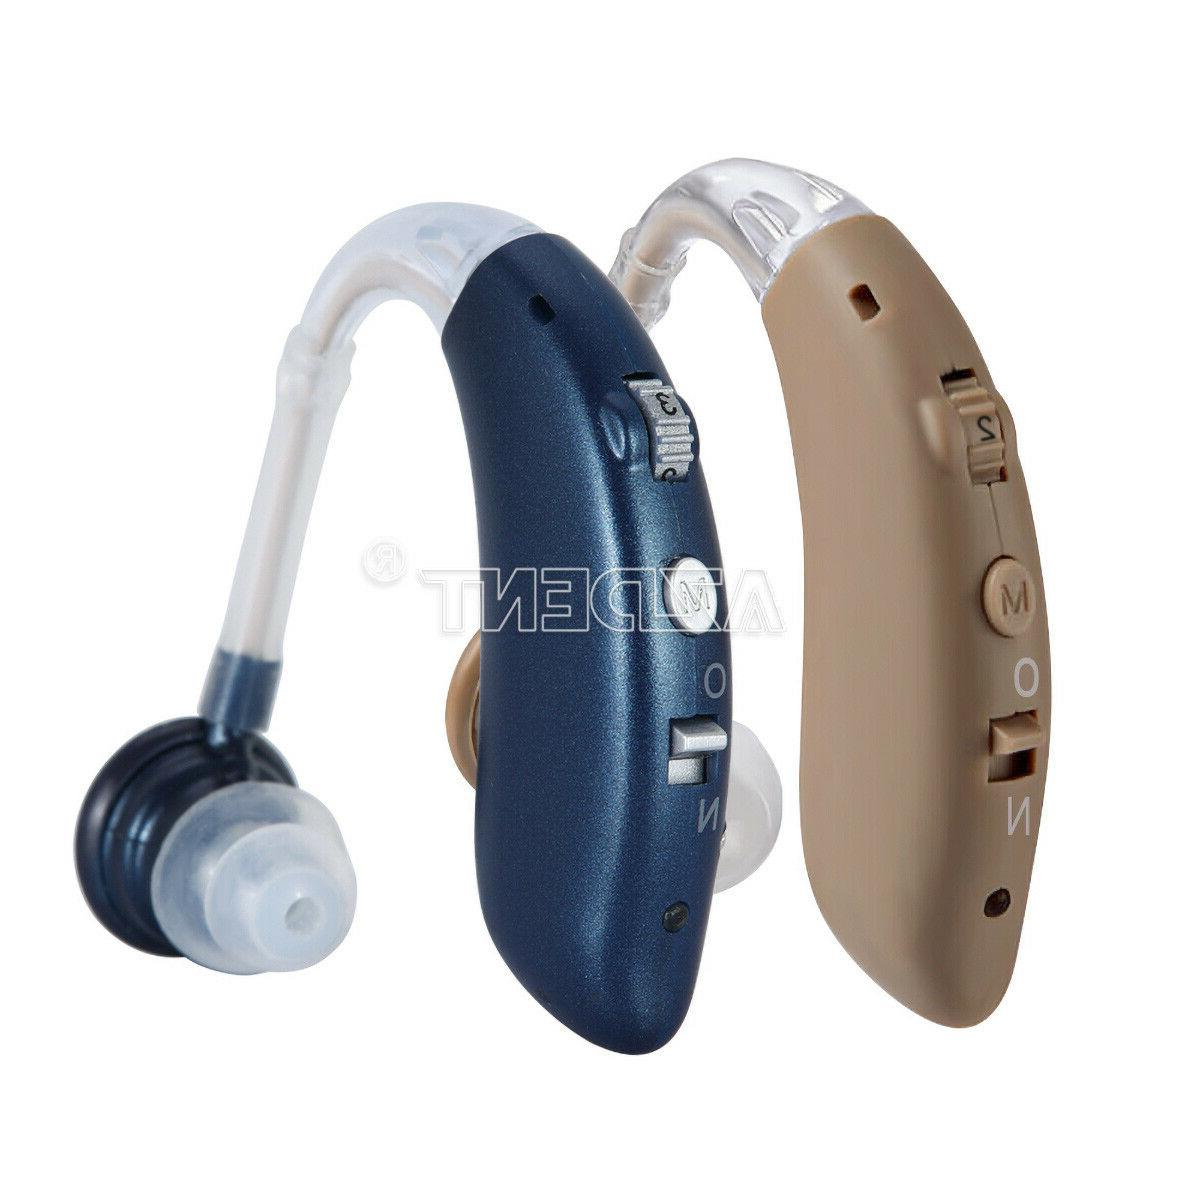 Rechargeable Acousticon Behind Ear Hearing Aid/Aids Audiphon